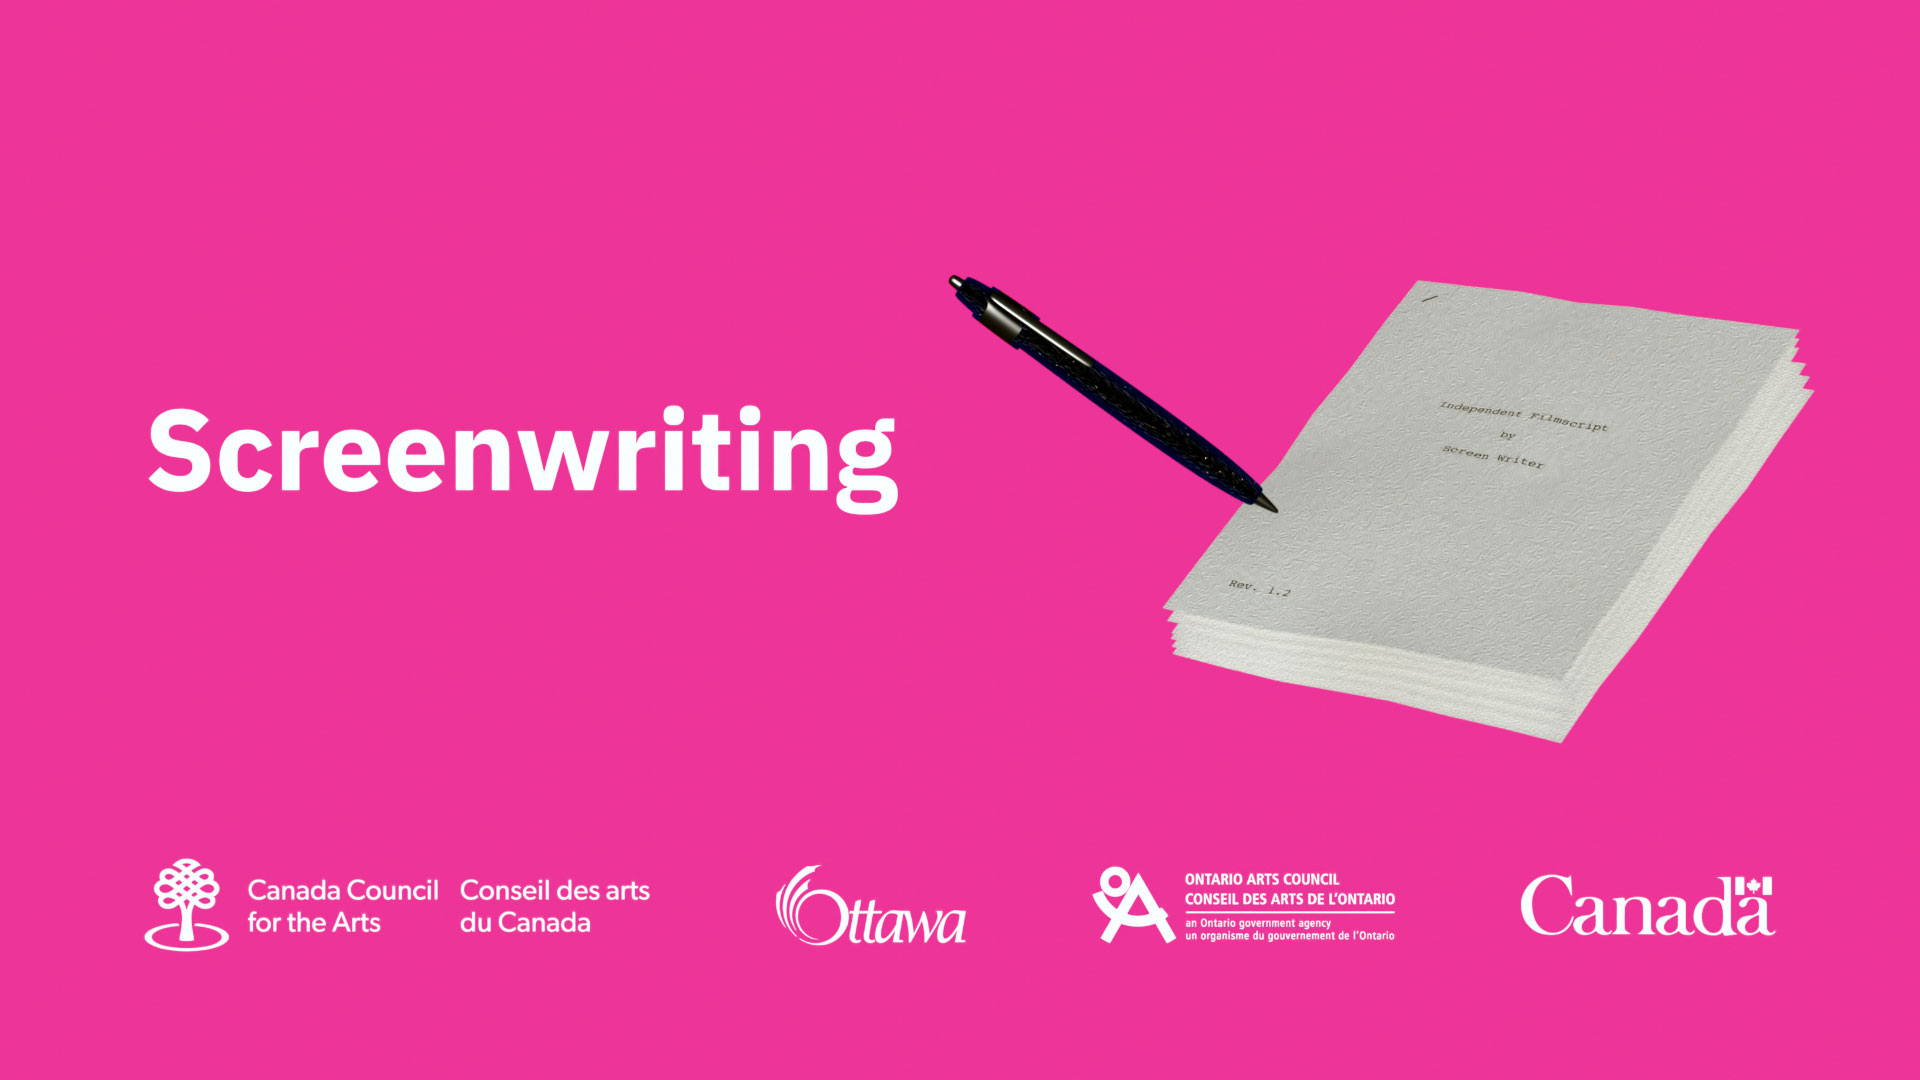 script and pen in a pink background